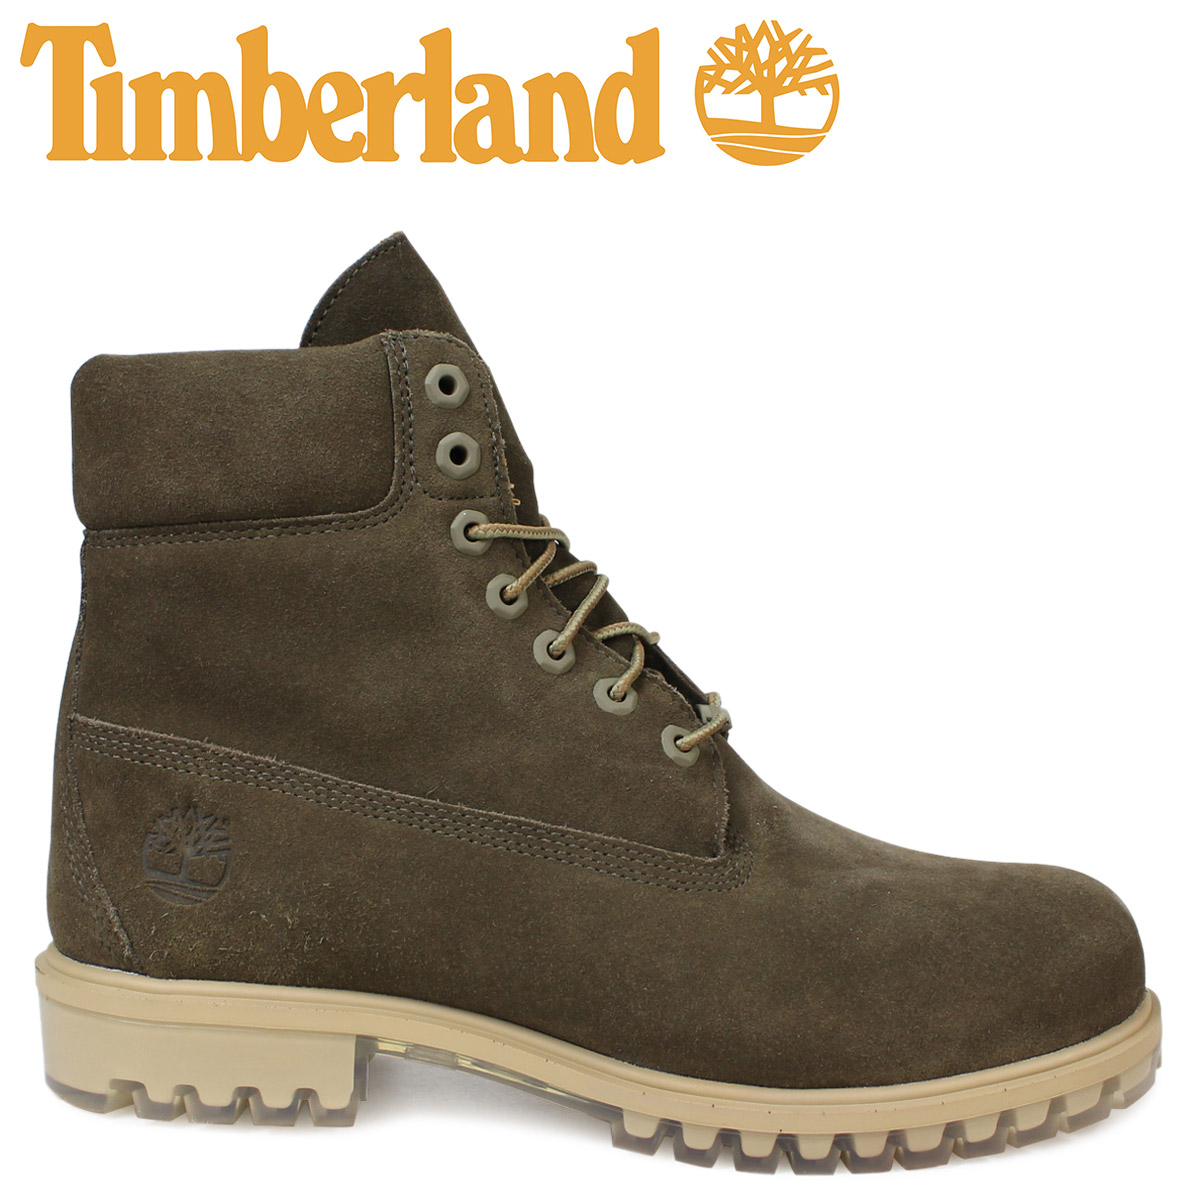 83108e54f2e 6 inches of Timberland boots men Timberland 6INCH PREMIUM SUEDE BOOT A18PZ  W Wise waterproofing dark green